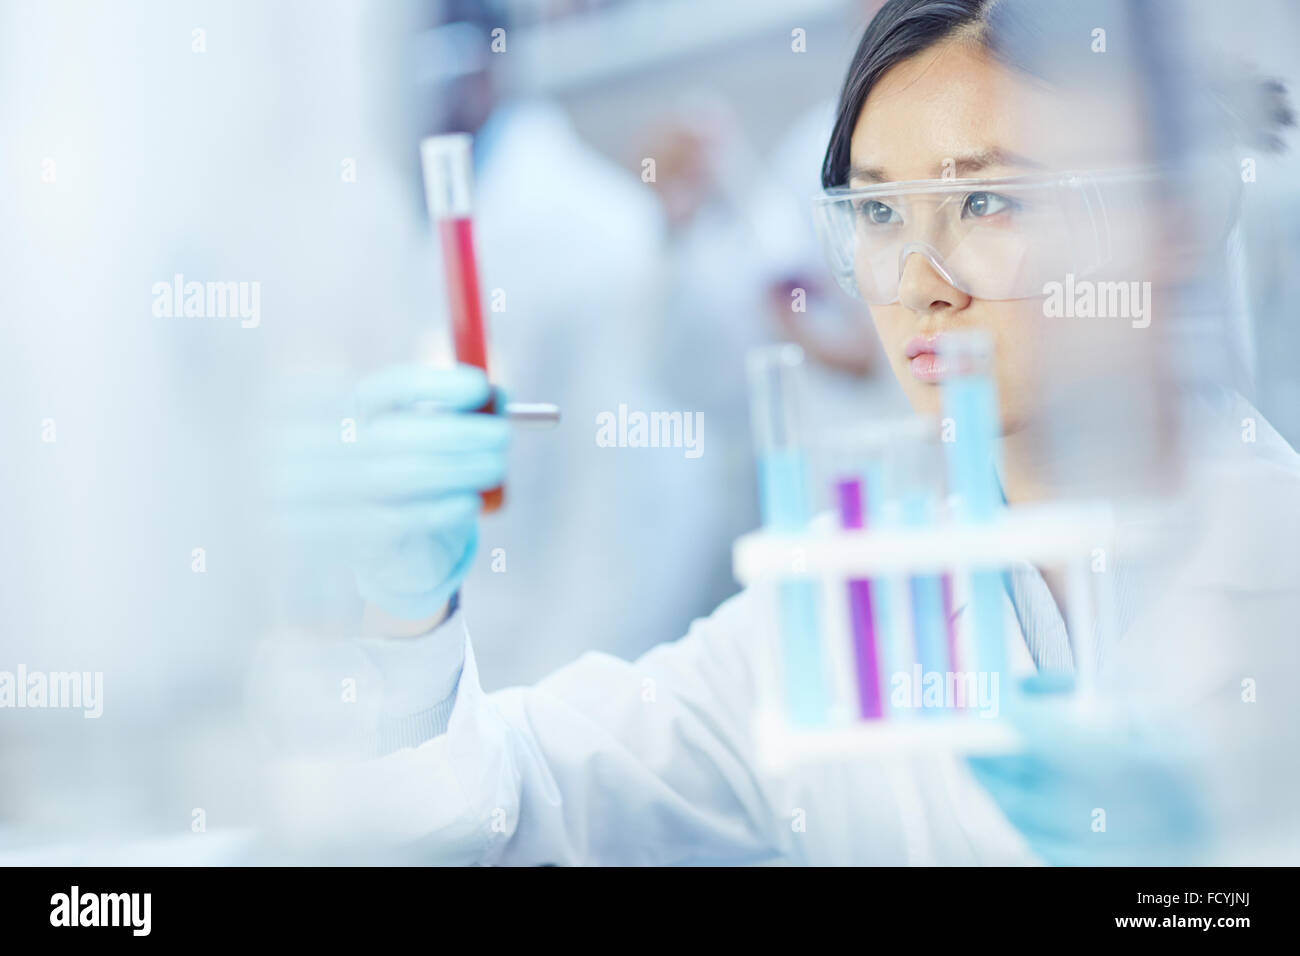 Young assistant analyzing substances in laboratory - Stock Image